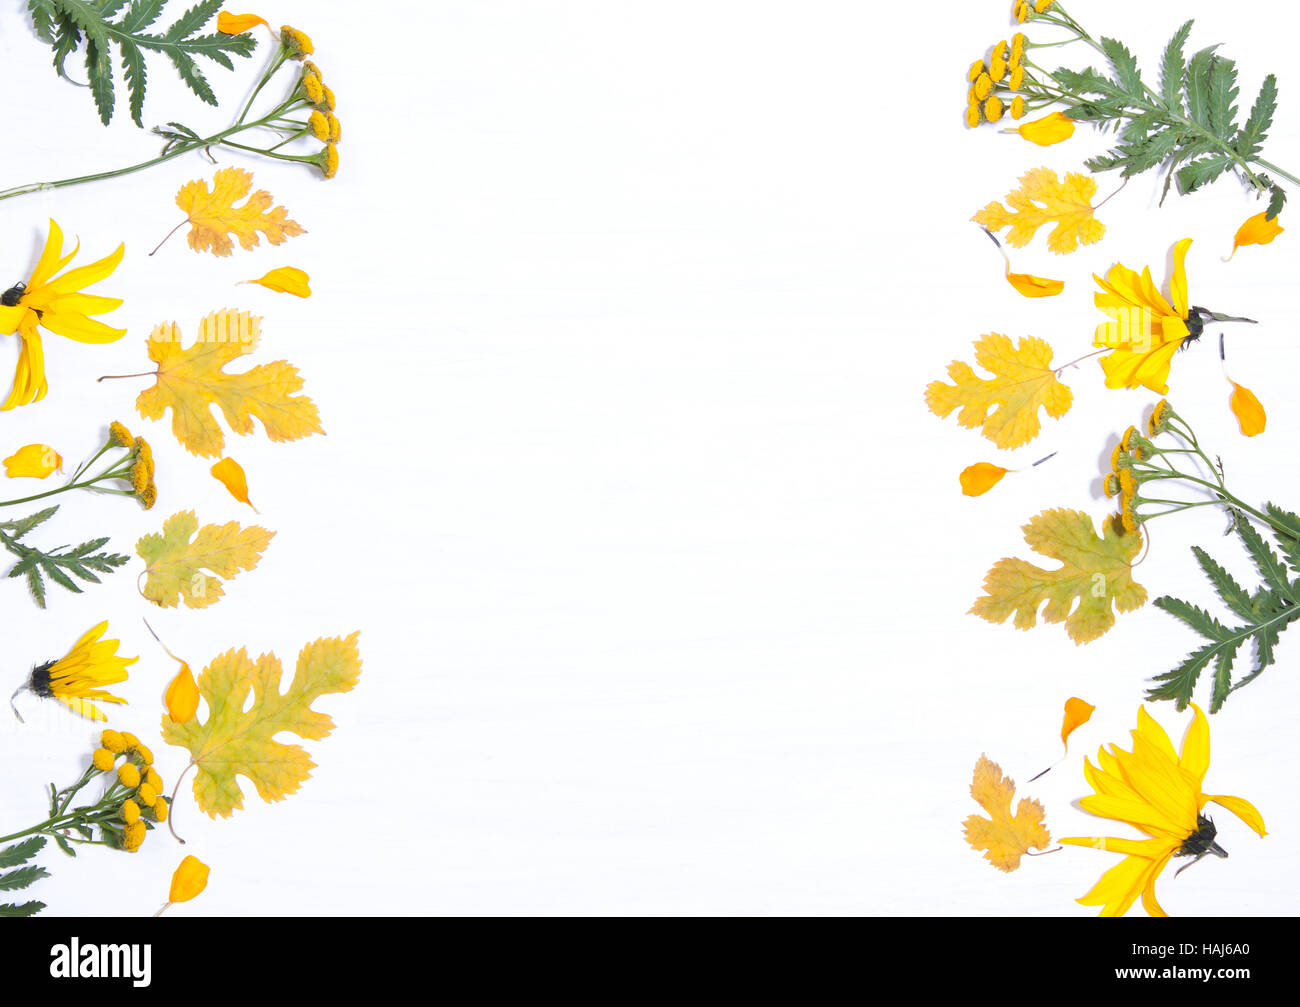 Frame On The Background Of Yellow Flowers And Leavesncept Stock